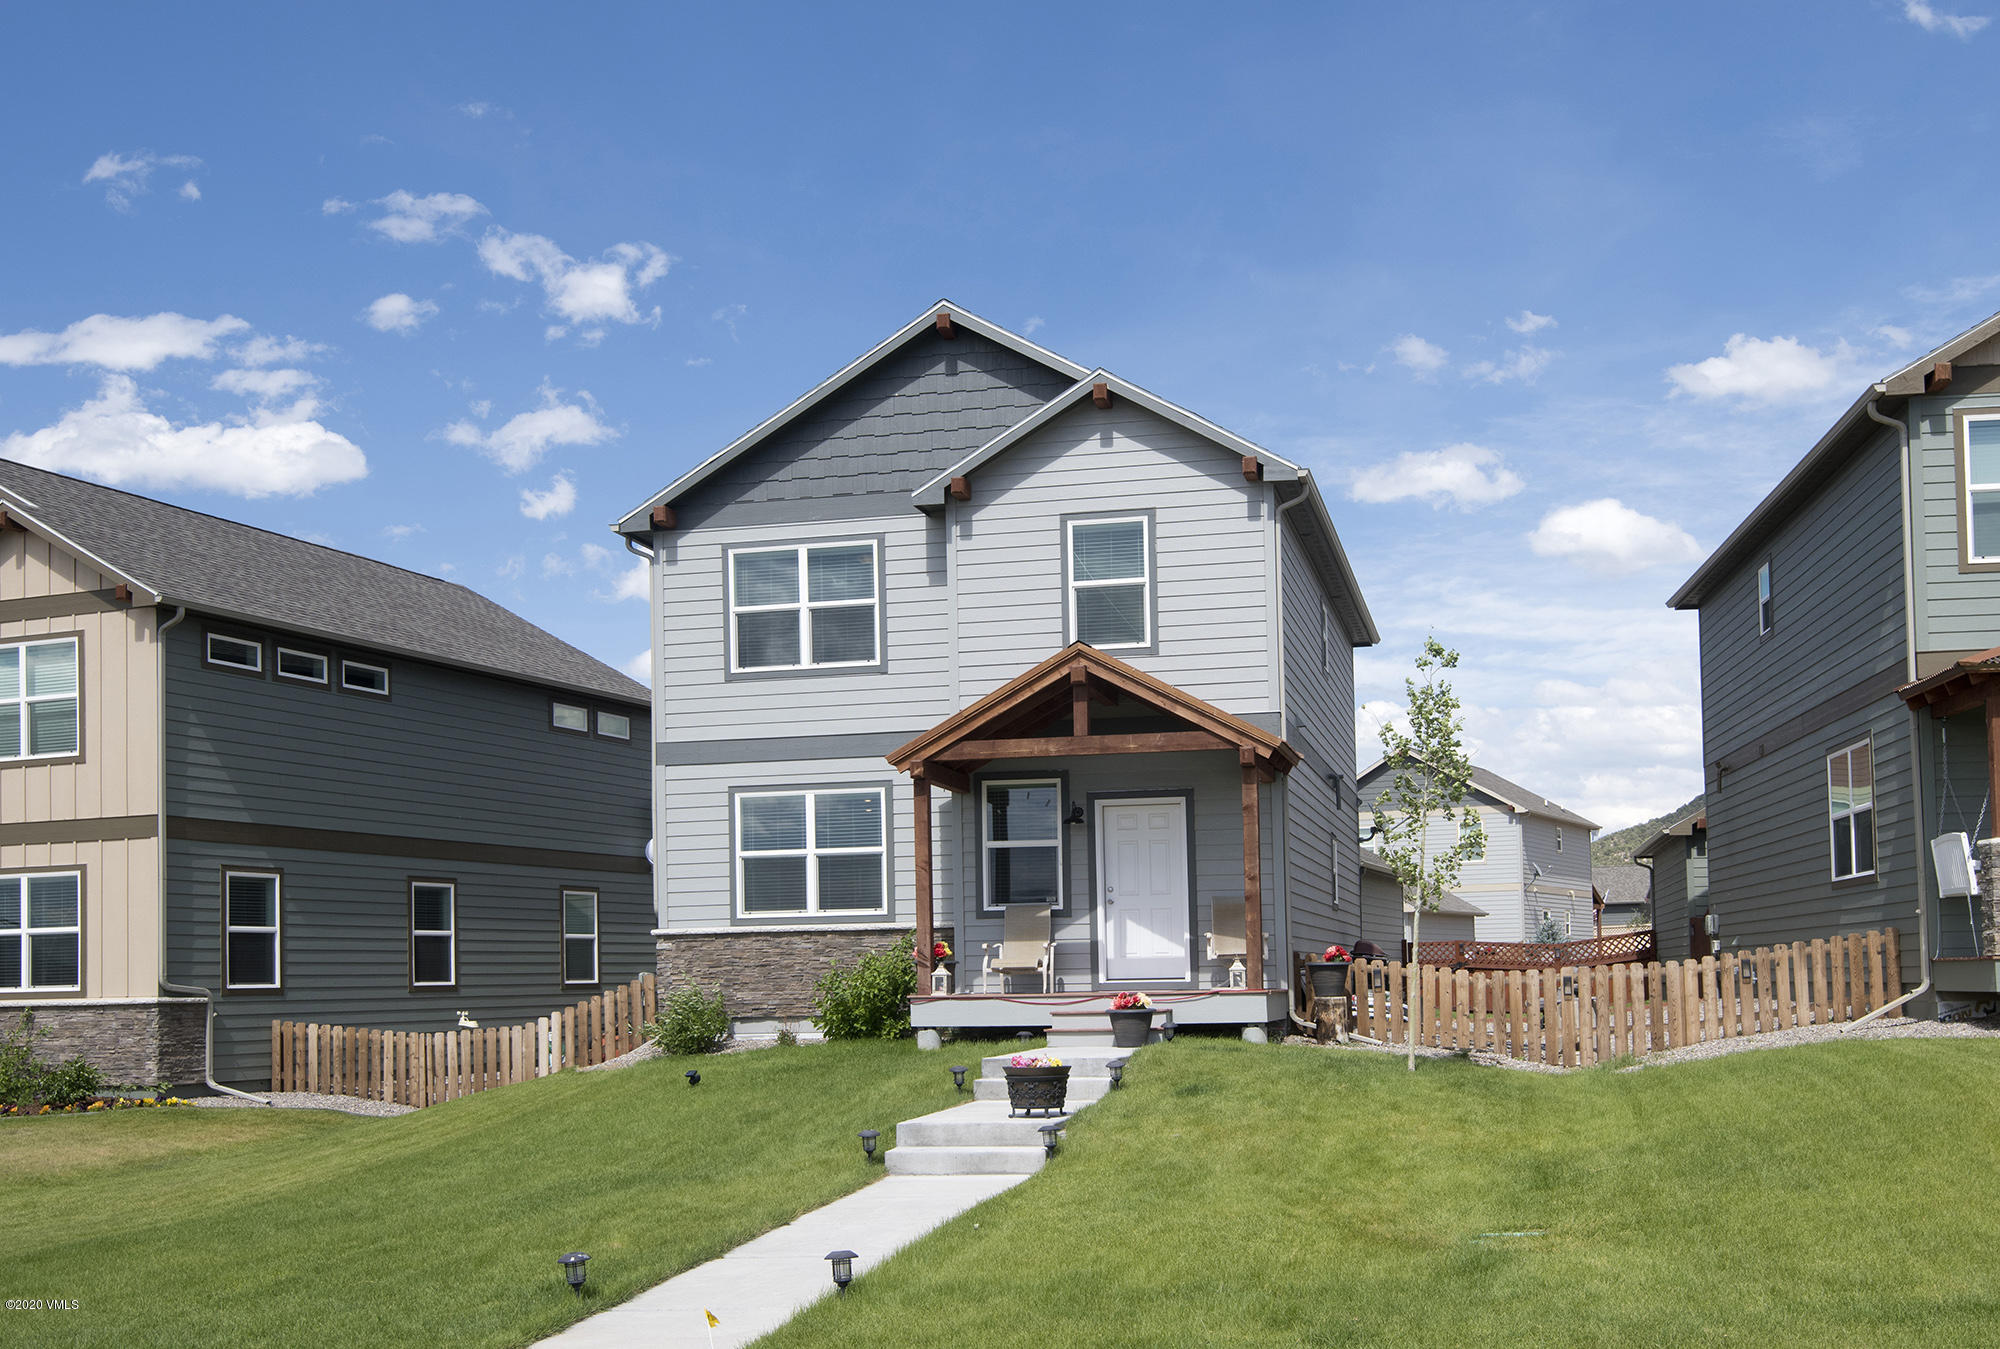 76 Steamboat Drive, Gypsum, CO 81637 Property Photo - Gypsum, CO real estate listing